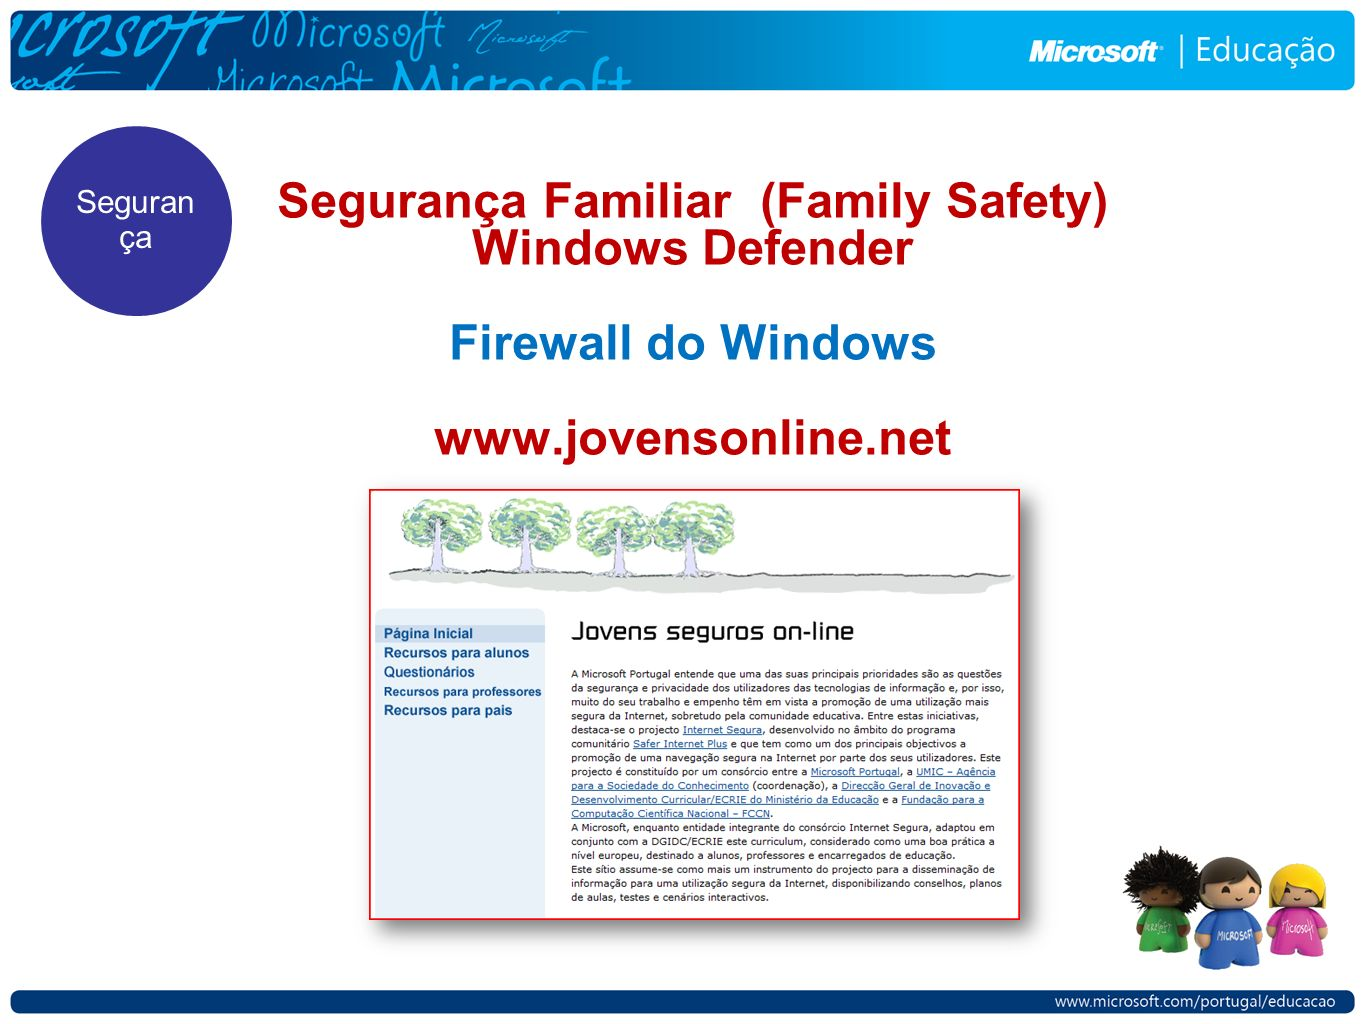 Segurança Segurança Familiar (Family Safety) Windows Defender Firewall do Windows www.jovensonline.net